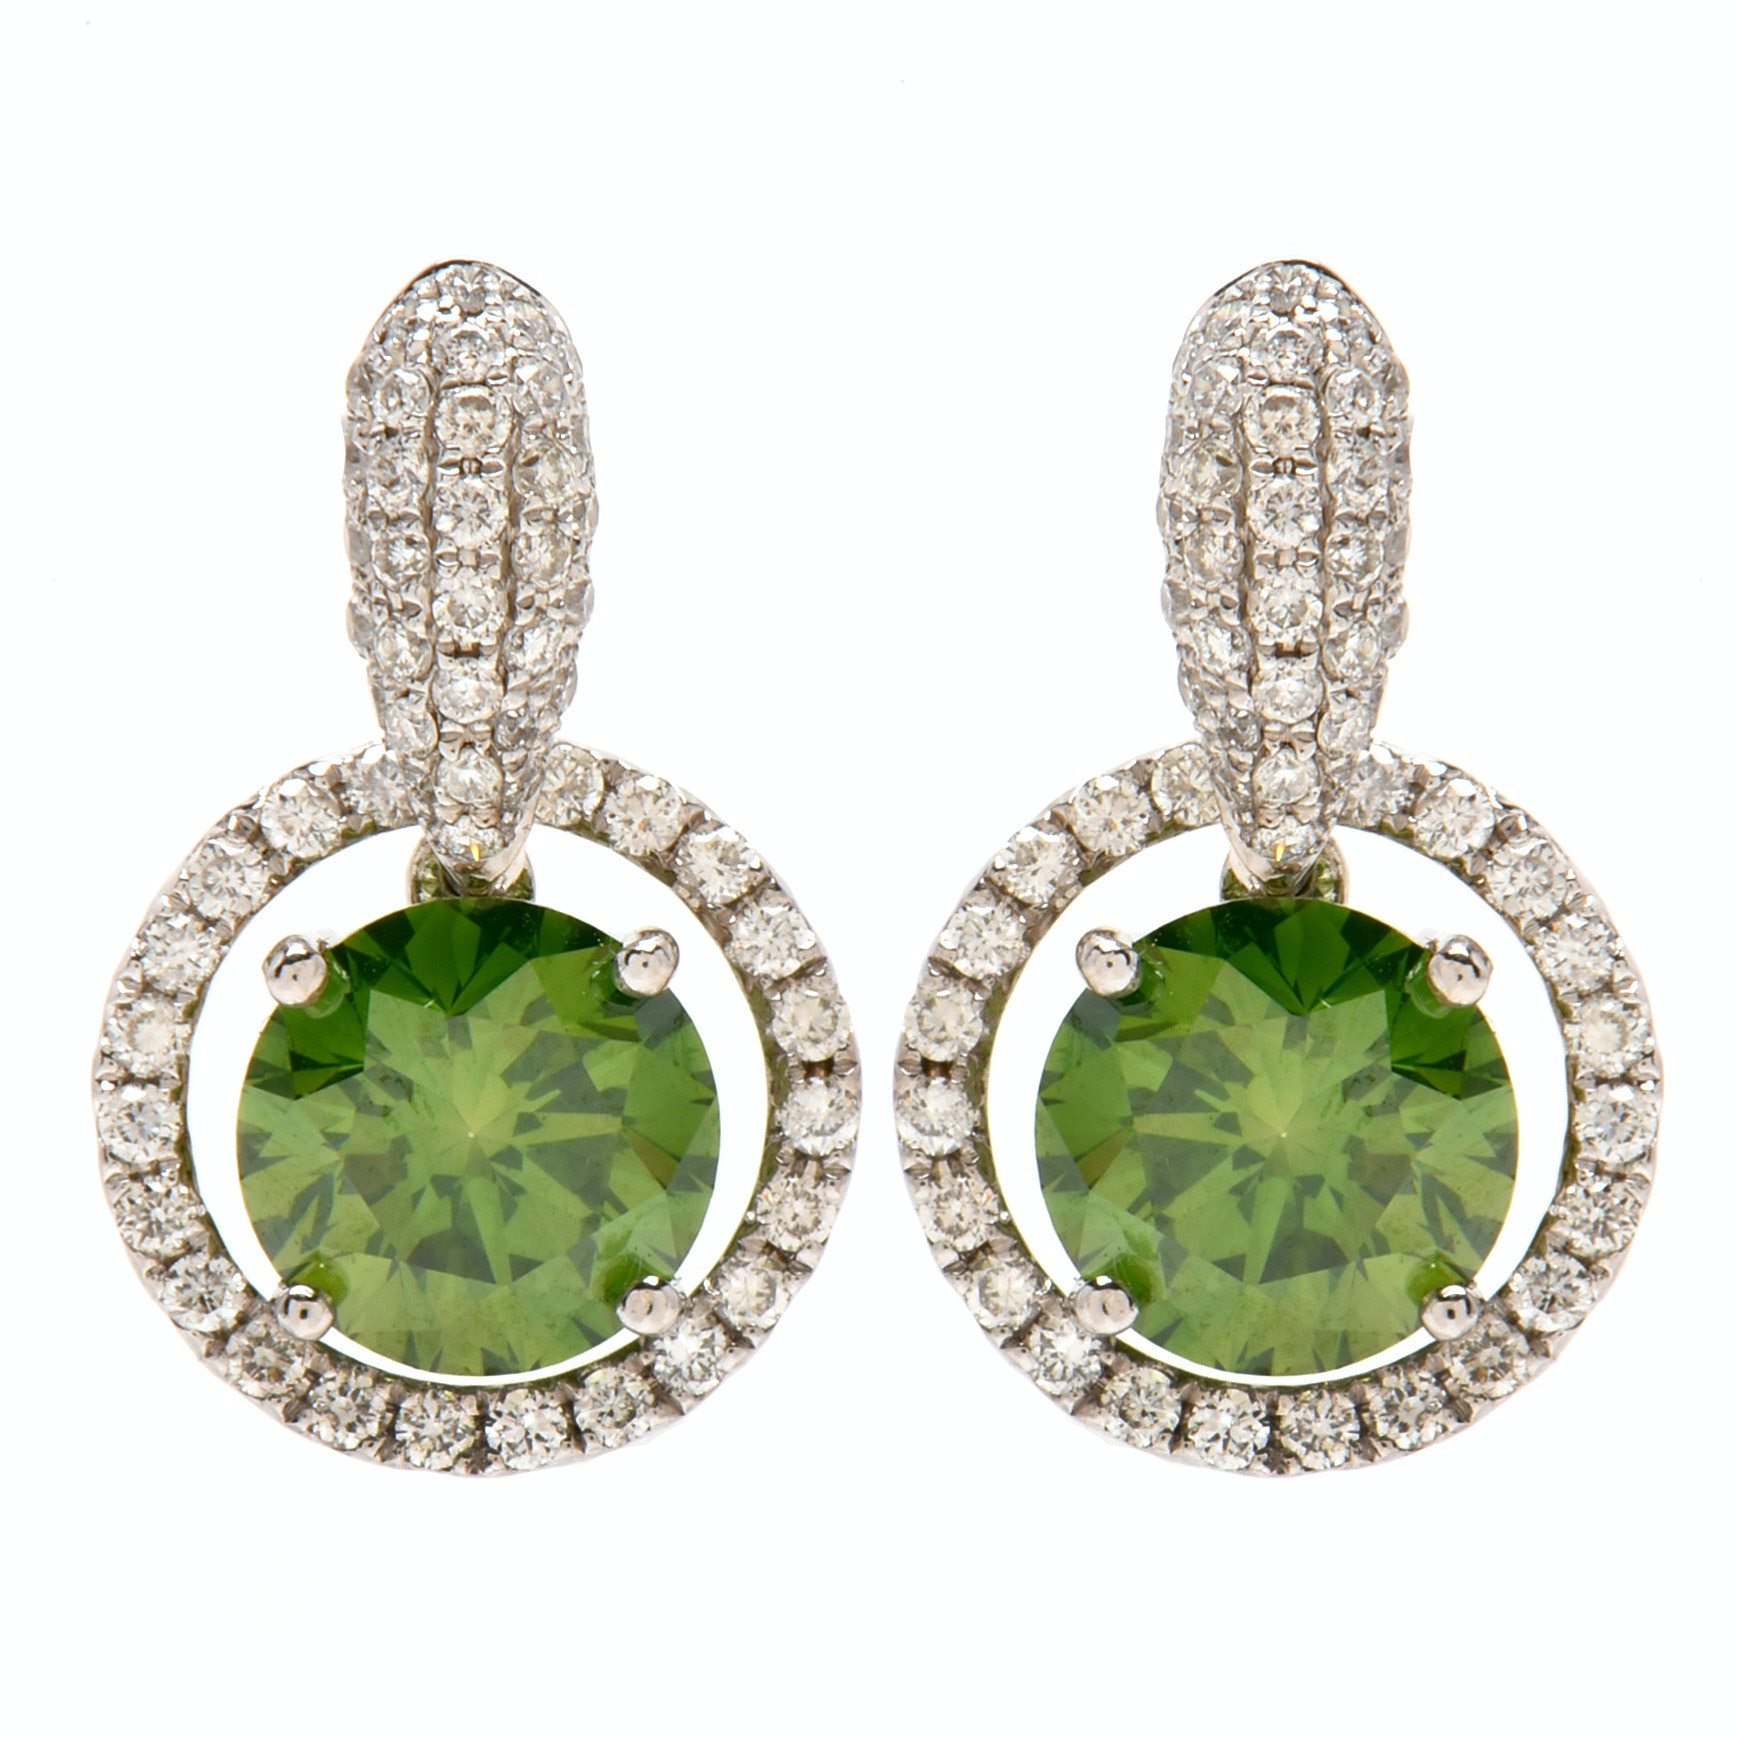 14K White Gold 3.25 CTW Green Color Treated Diamond Pierced Earrings